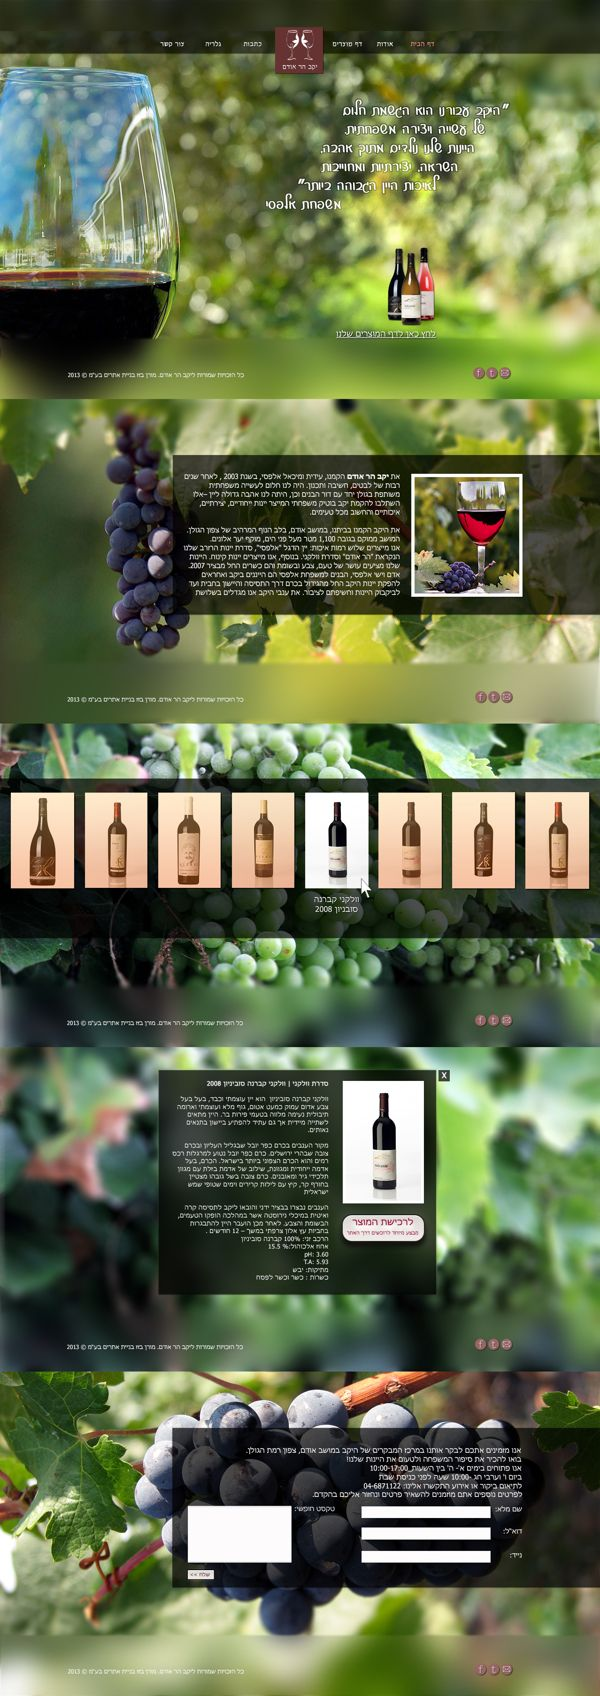 Odem Mountain Winery - web design by Moran Bazaz  http://www.behance.net/gallery/Odem-Mountain-Winery-web-design/9478643